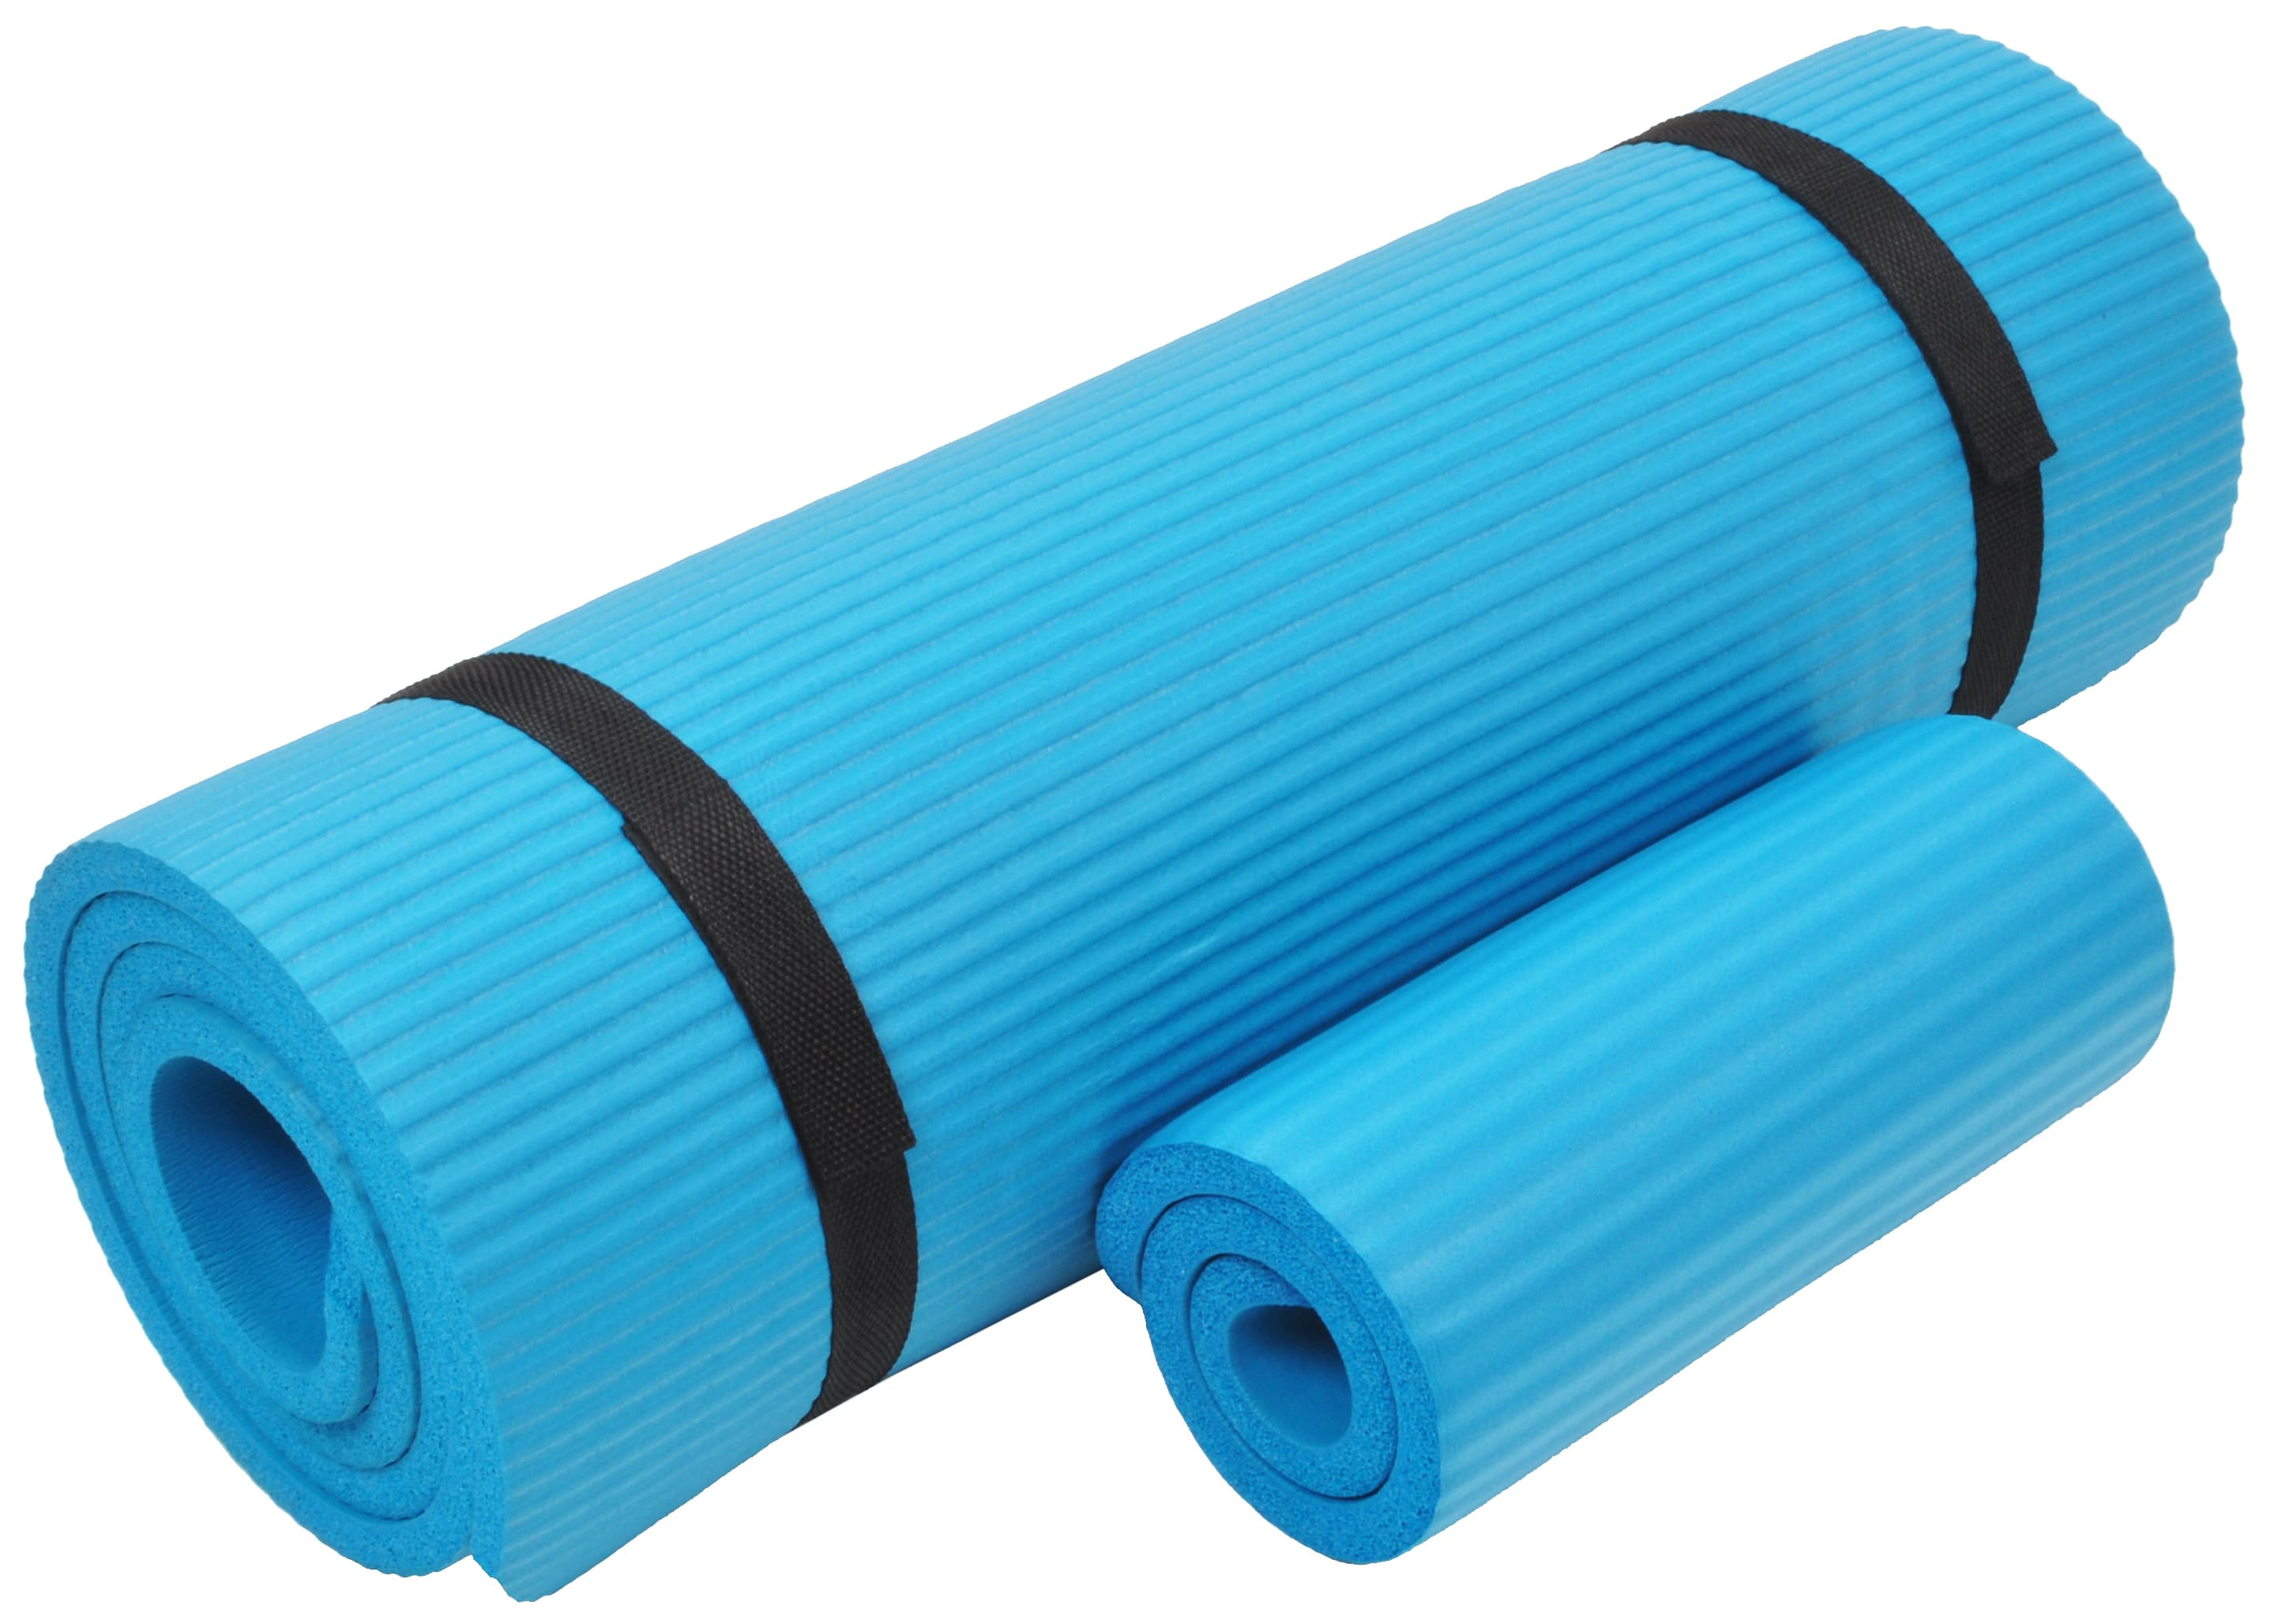 [US Direct] Original BalanceFrom GoYoga+ All-Purpose 1/2-Inch Extra Thick High Density Anti-Tear Exercise Yoga Mat and Knee Pad with Carrying Strap, Blue Blue